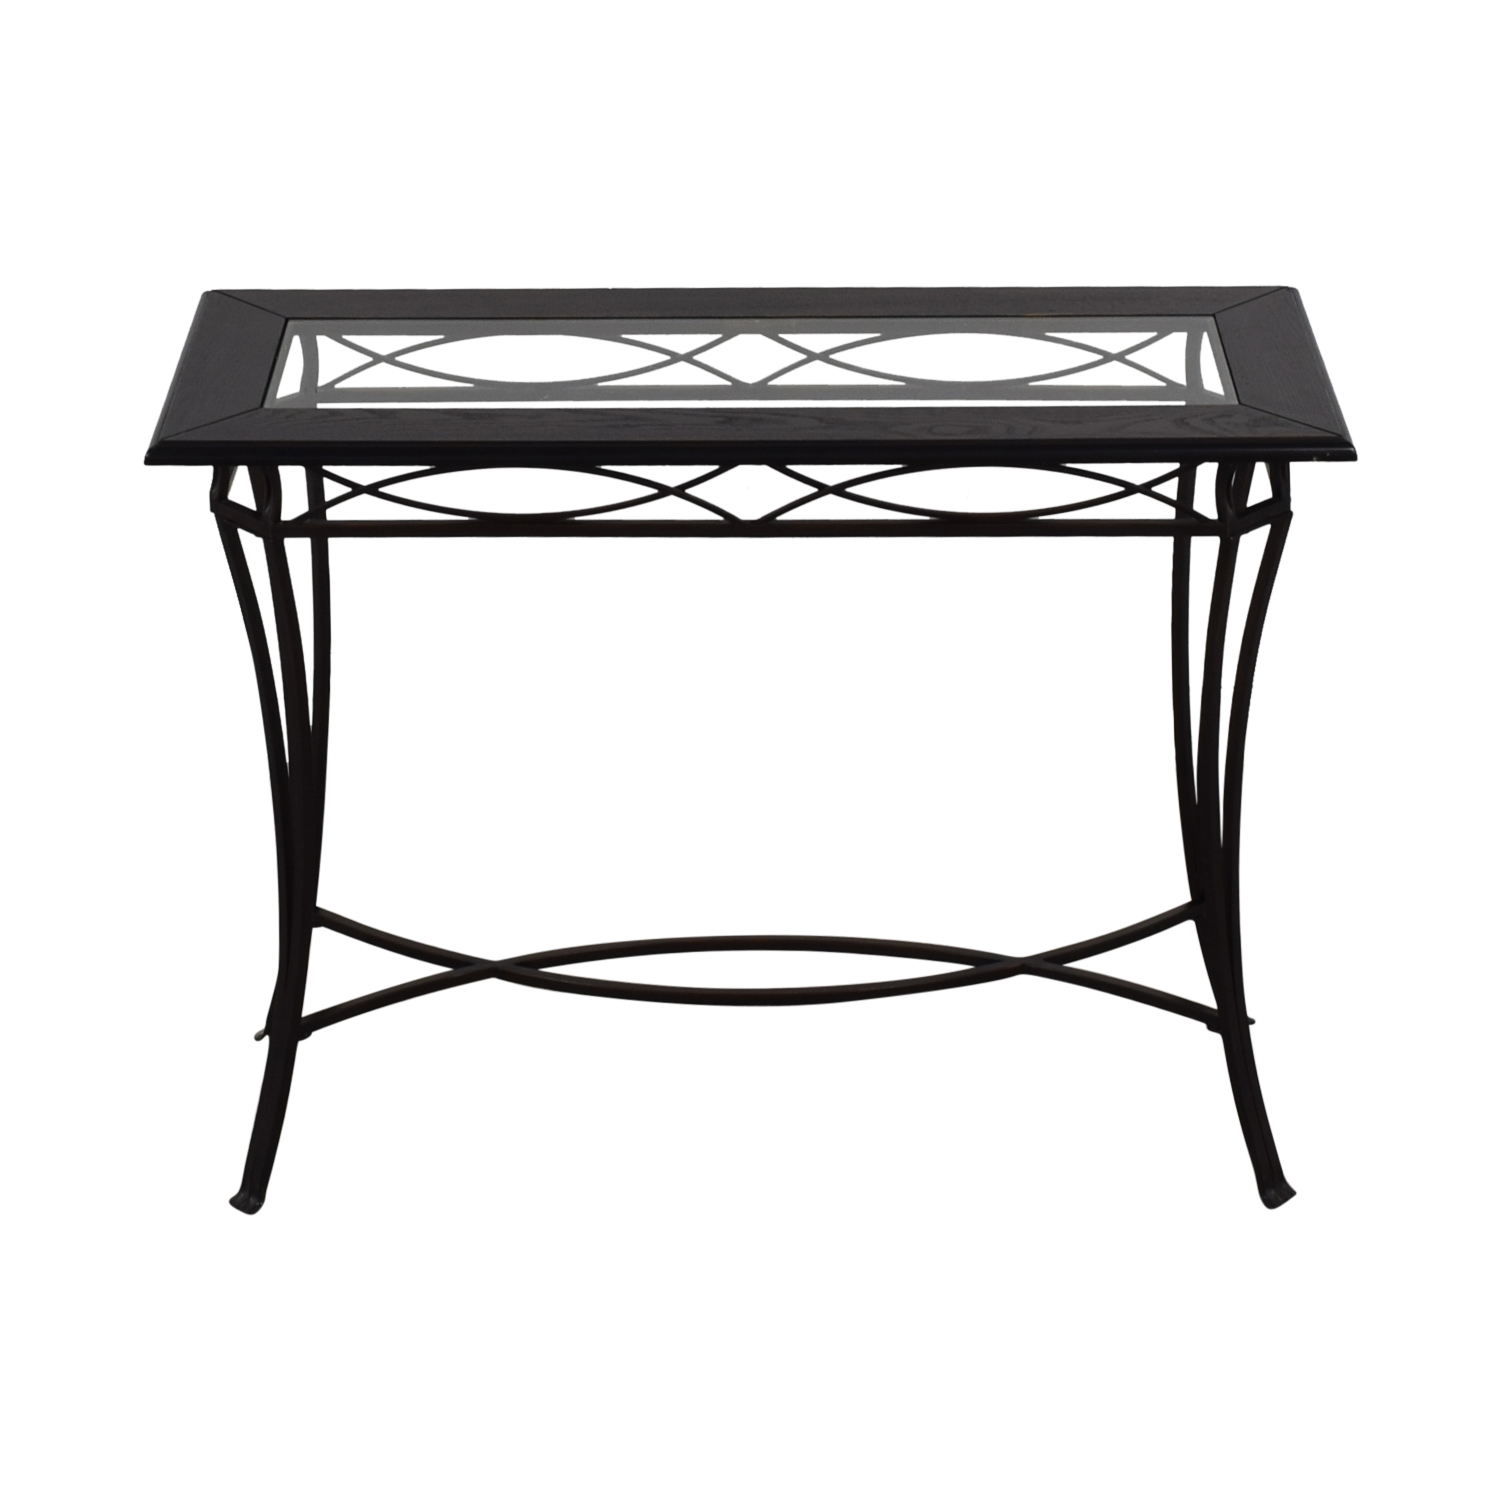 Sofa Table Target Sofa Table Best Target Ideas Console